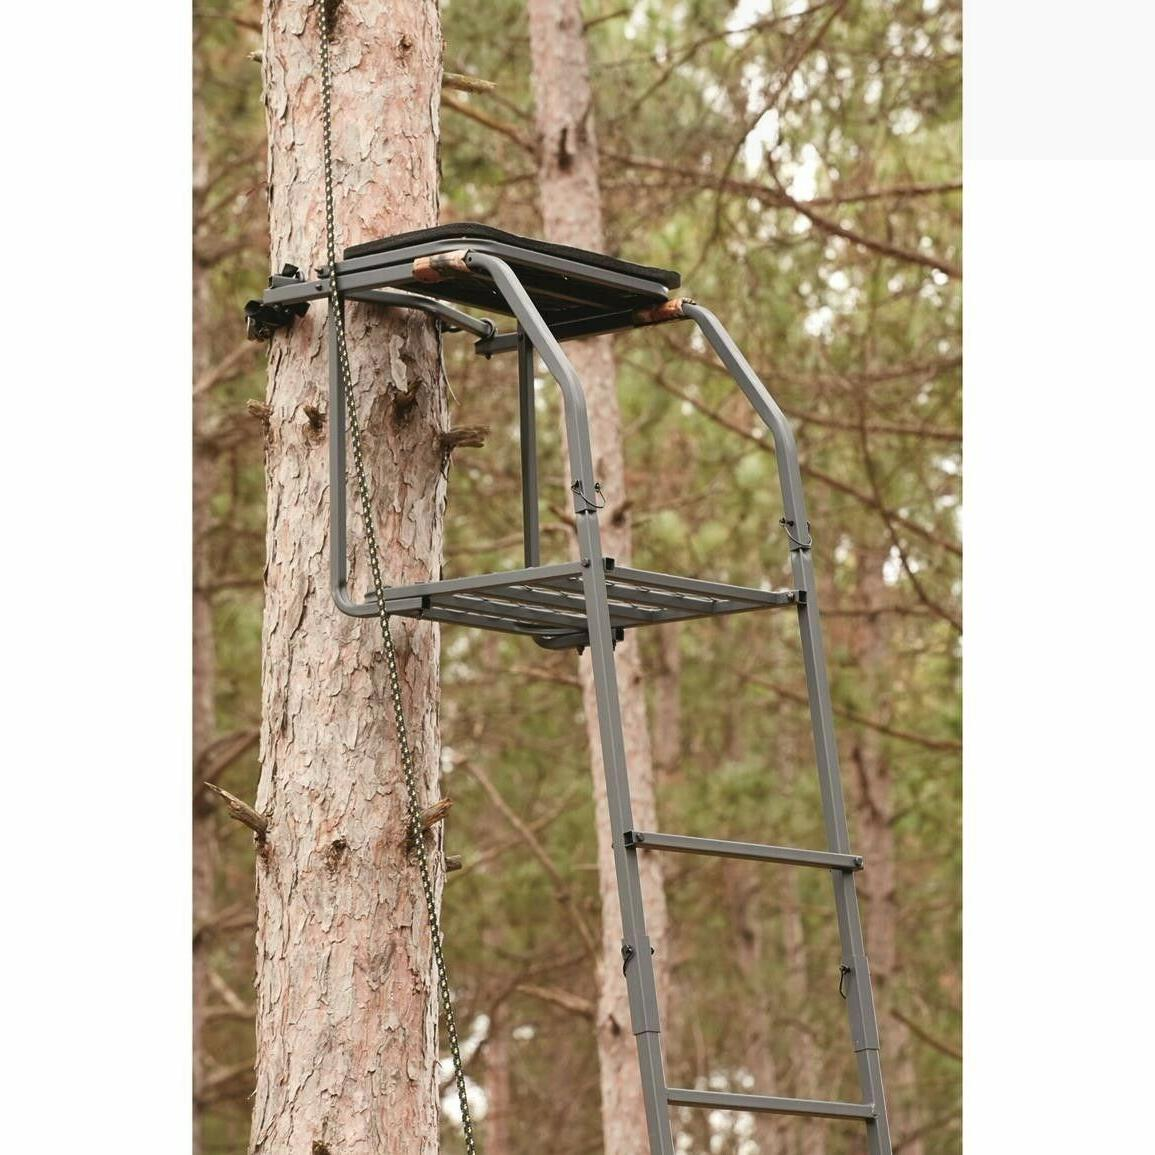 Guide Gear Ladder Bow and Arrow NEW